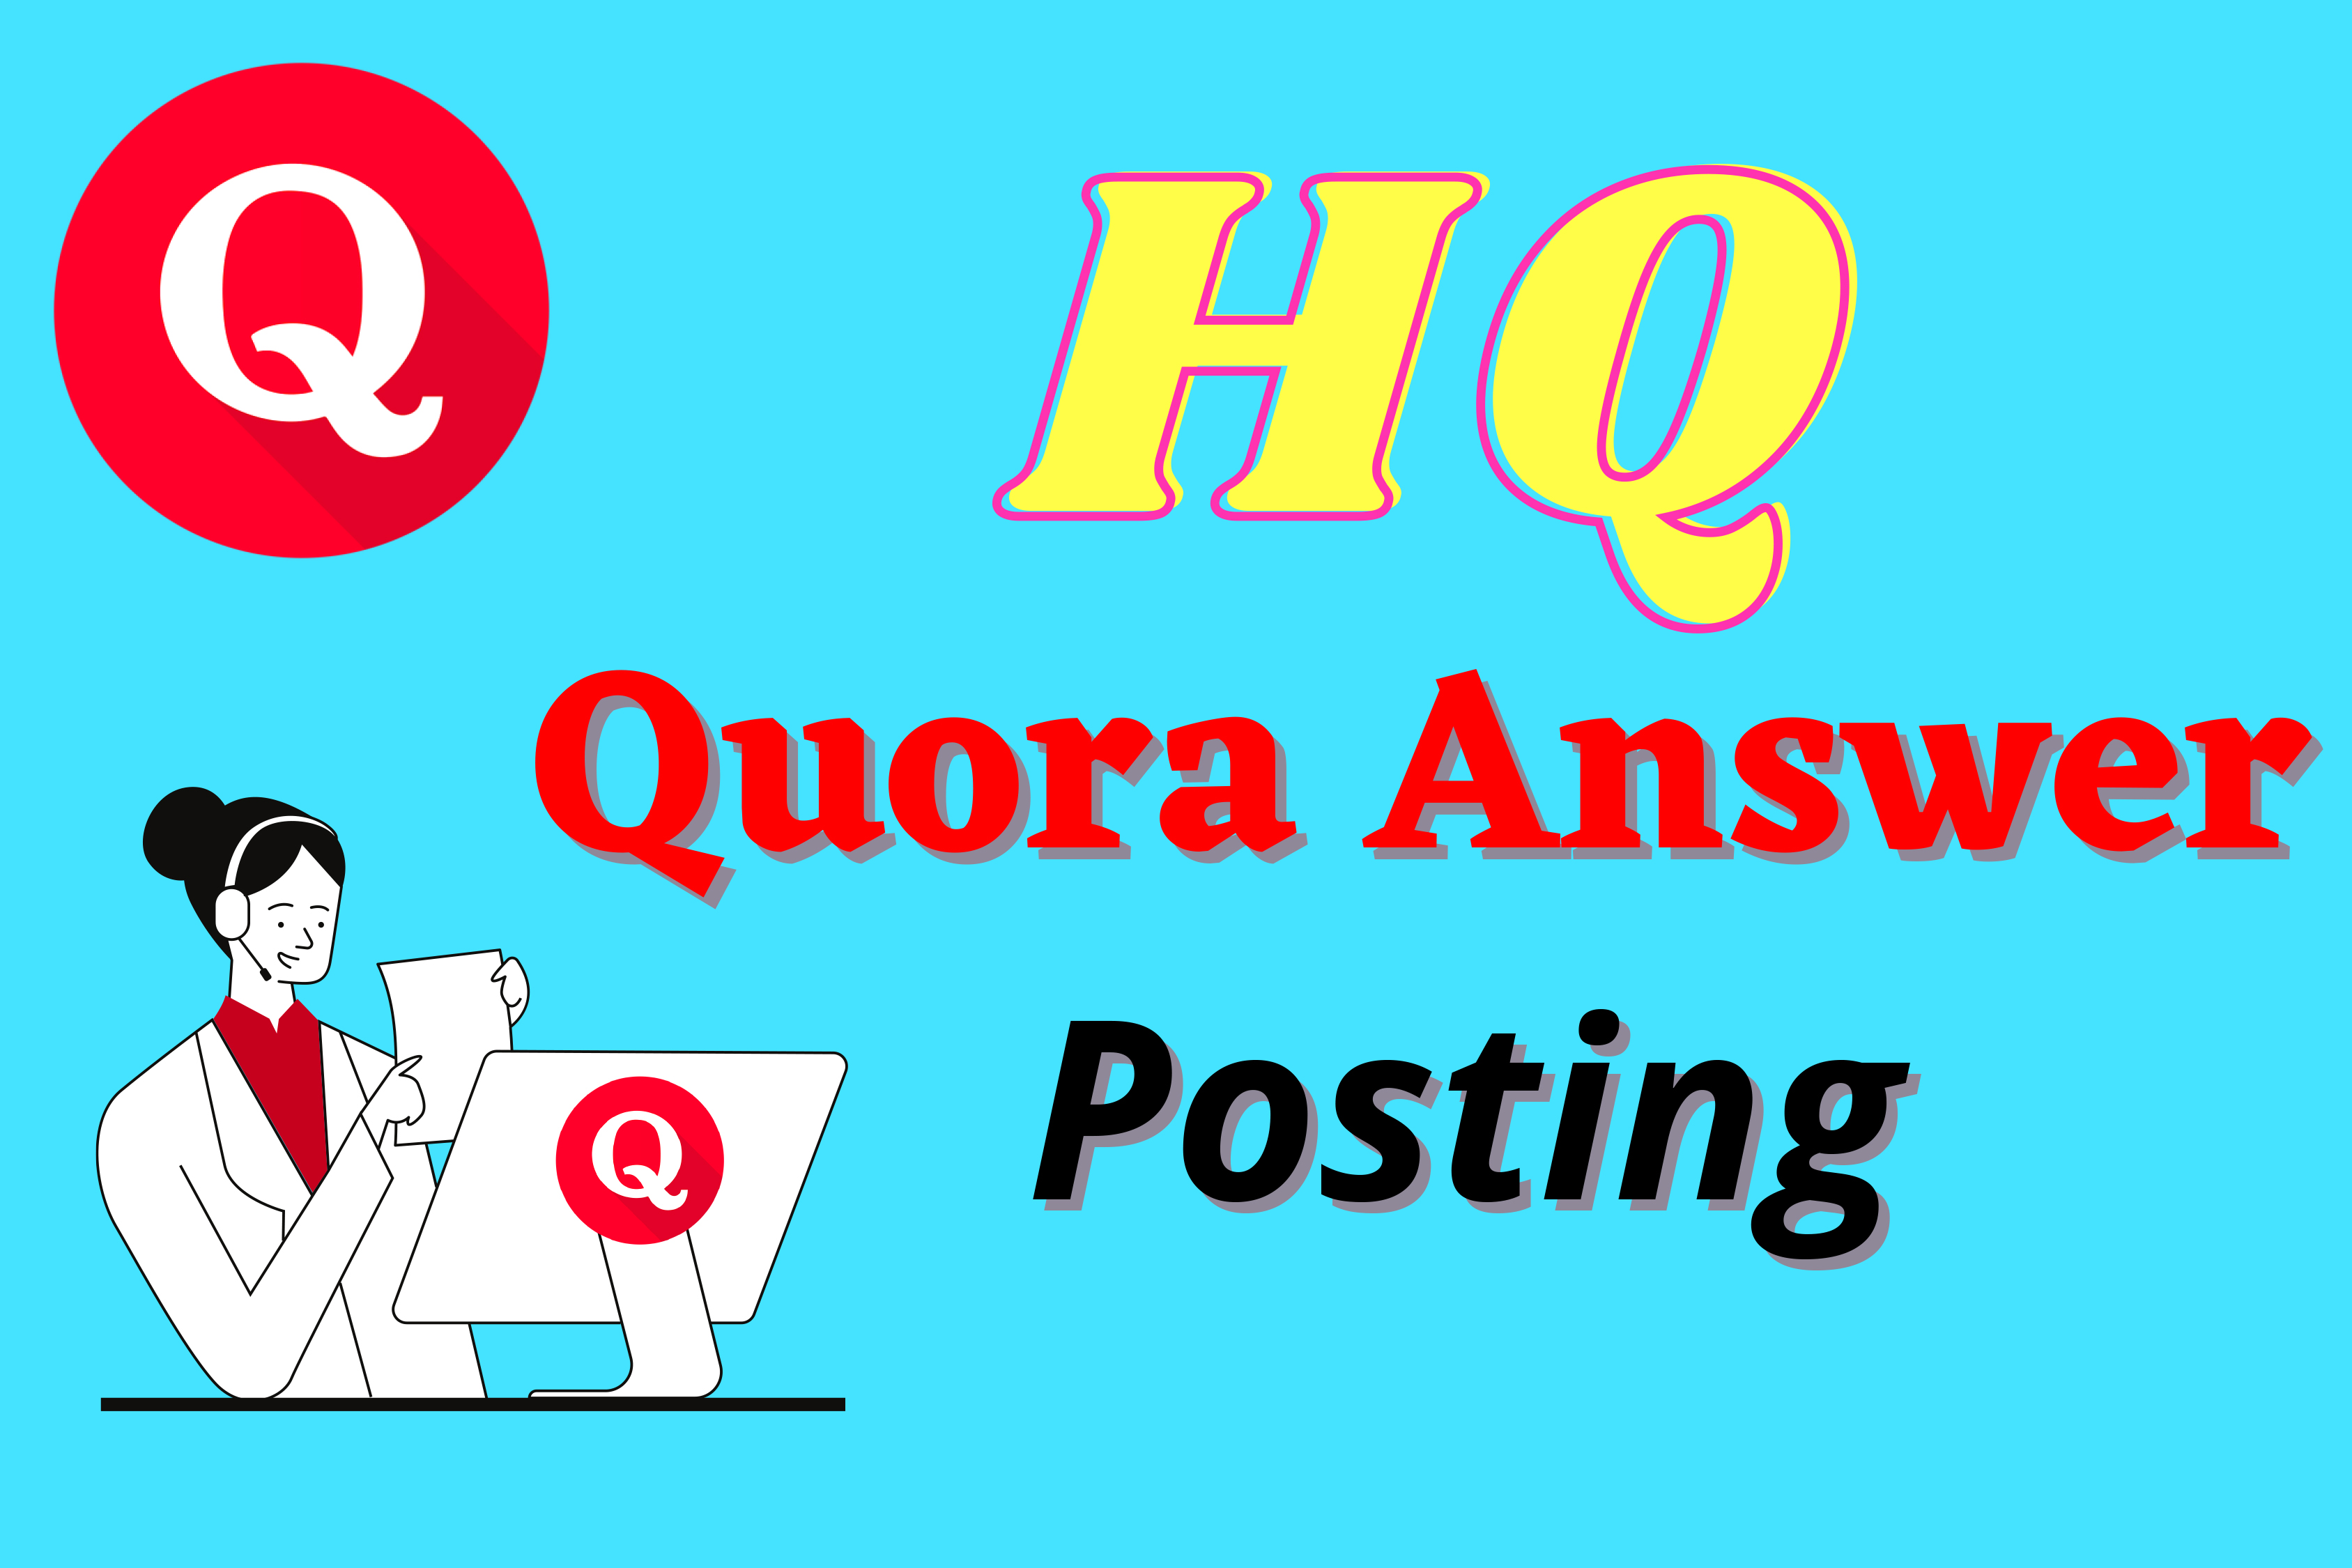 Promote your website with 5 high quality Quora answer with your Keyword & URL